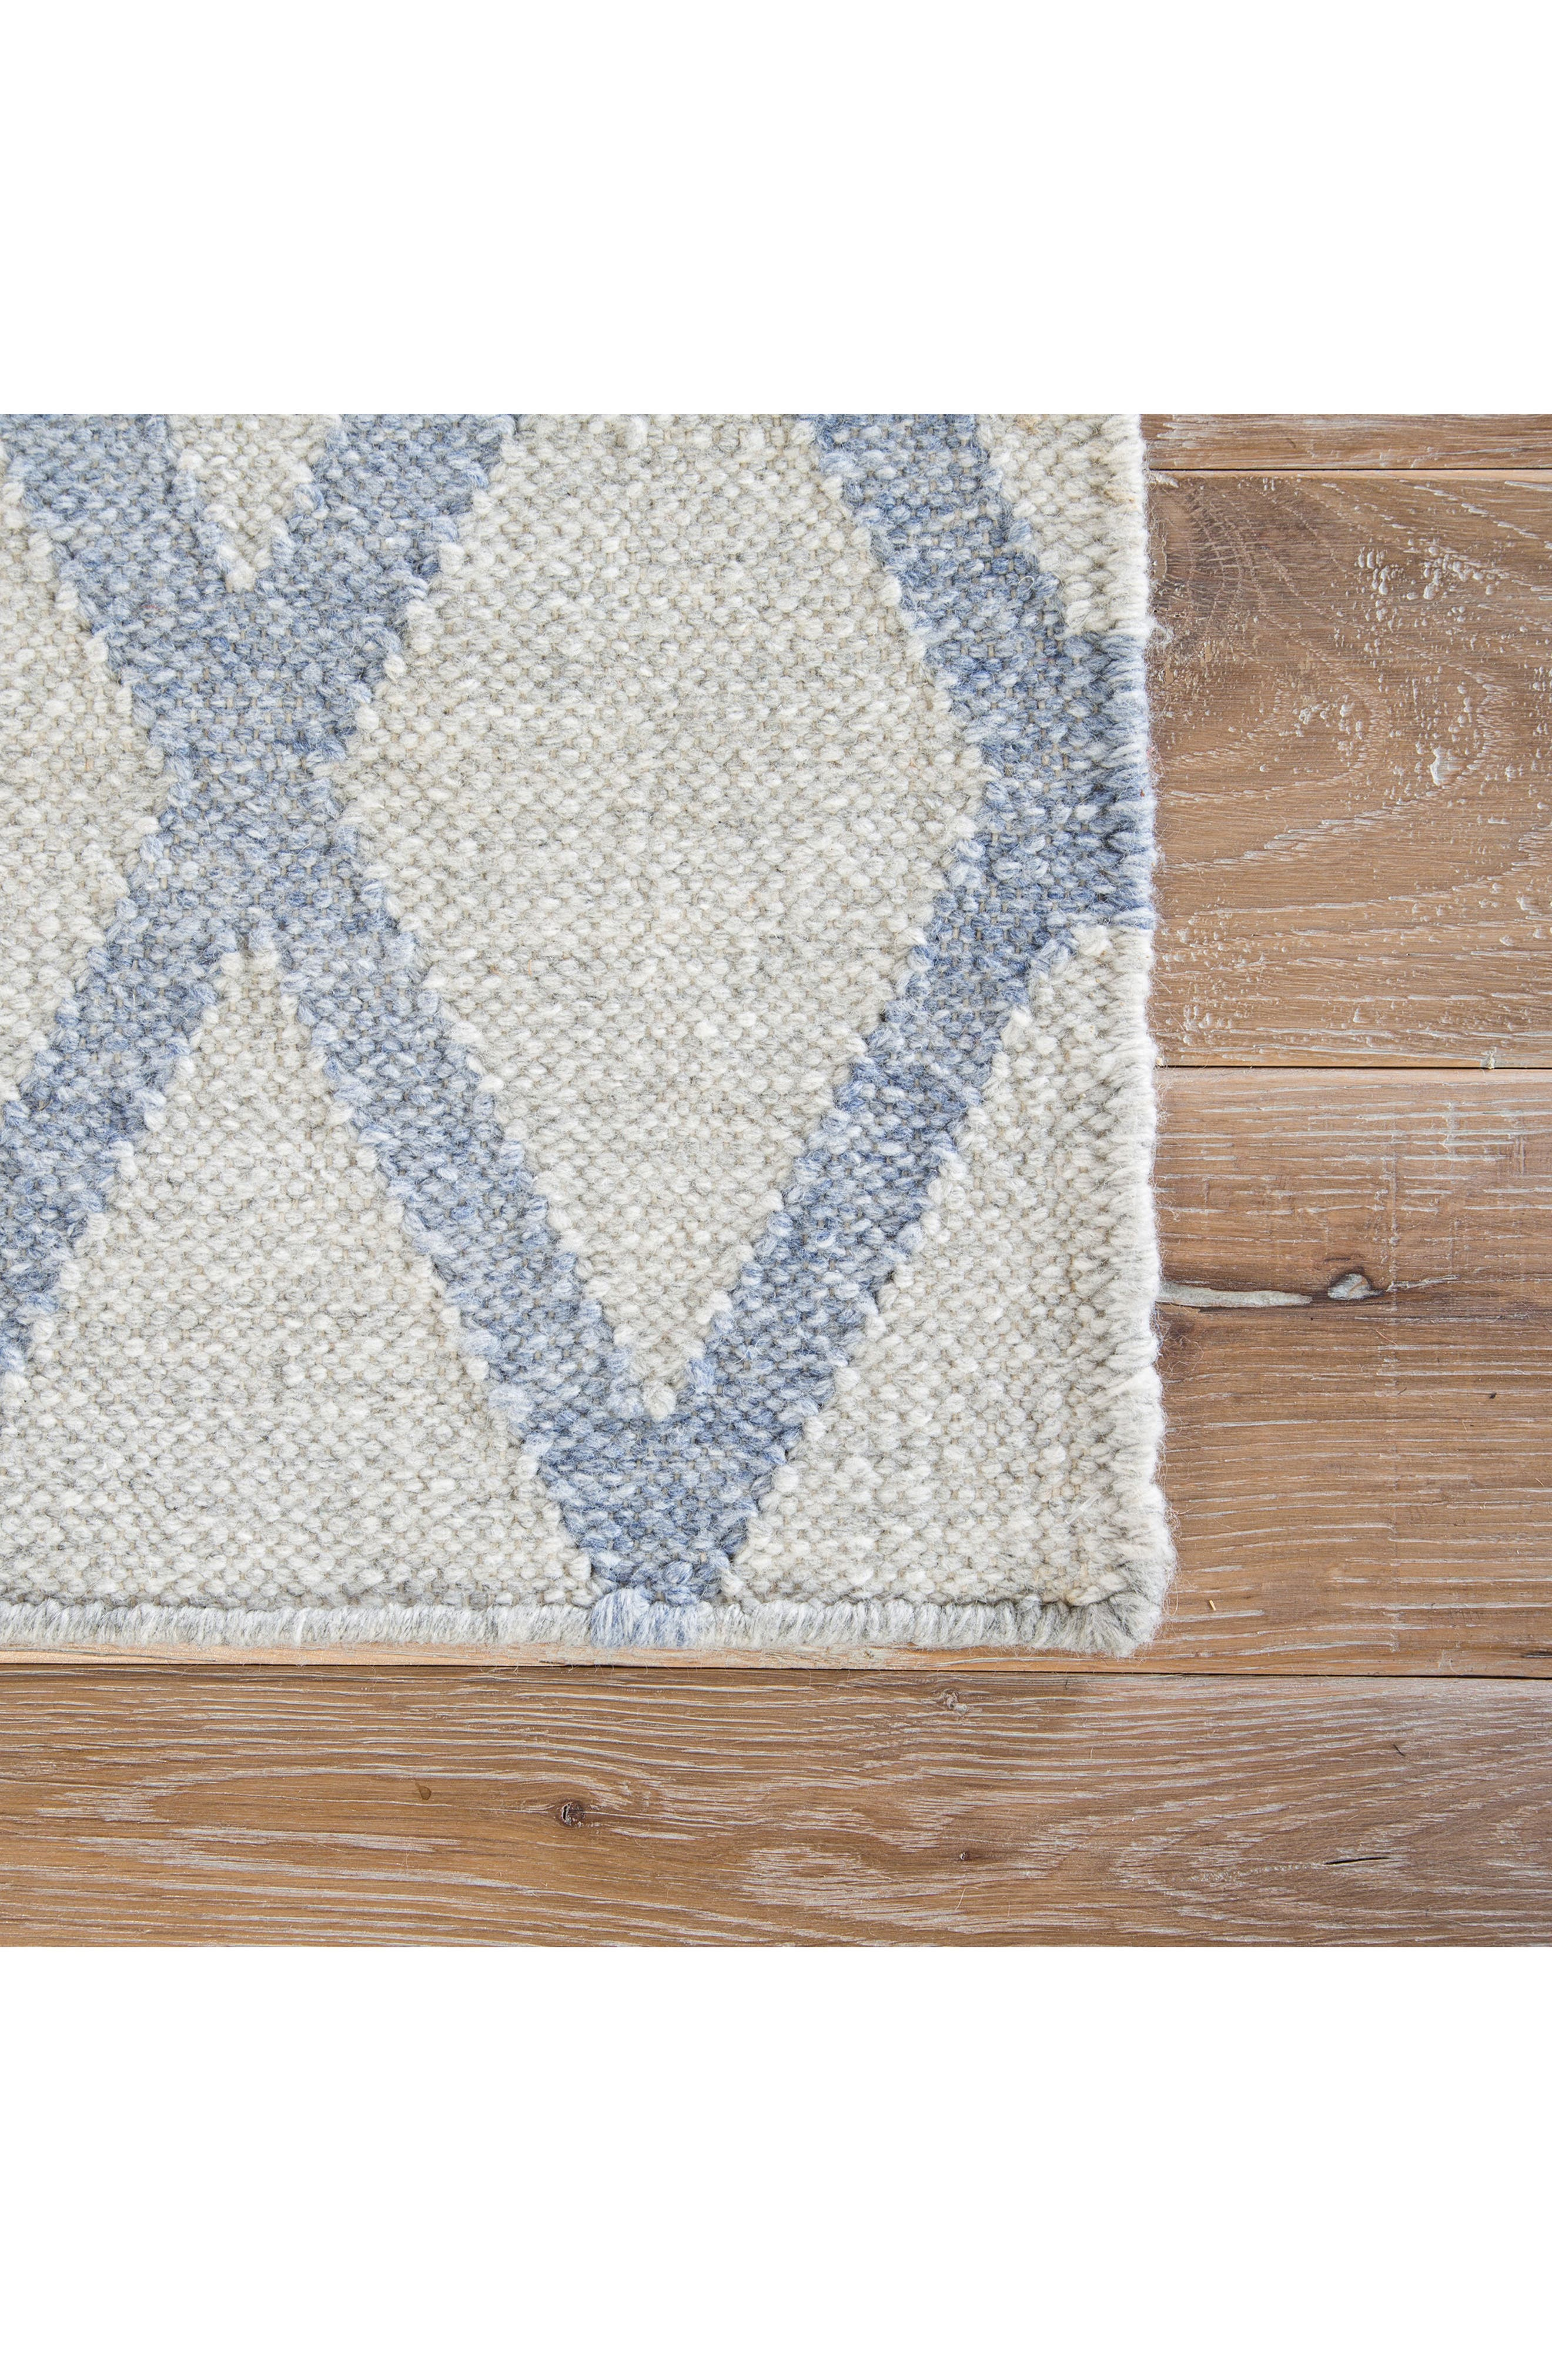 Pyramid Blocks Rug,                             Alternate thumbnail 3, color,                             Faded Denim/ Oatmeal